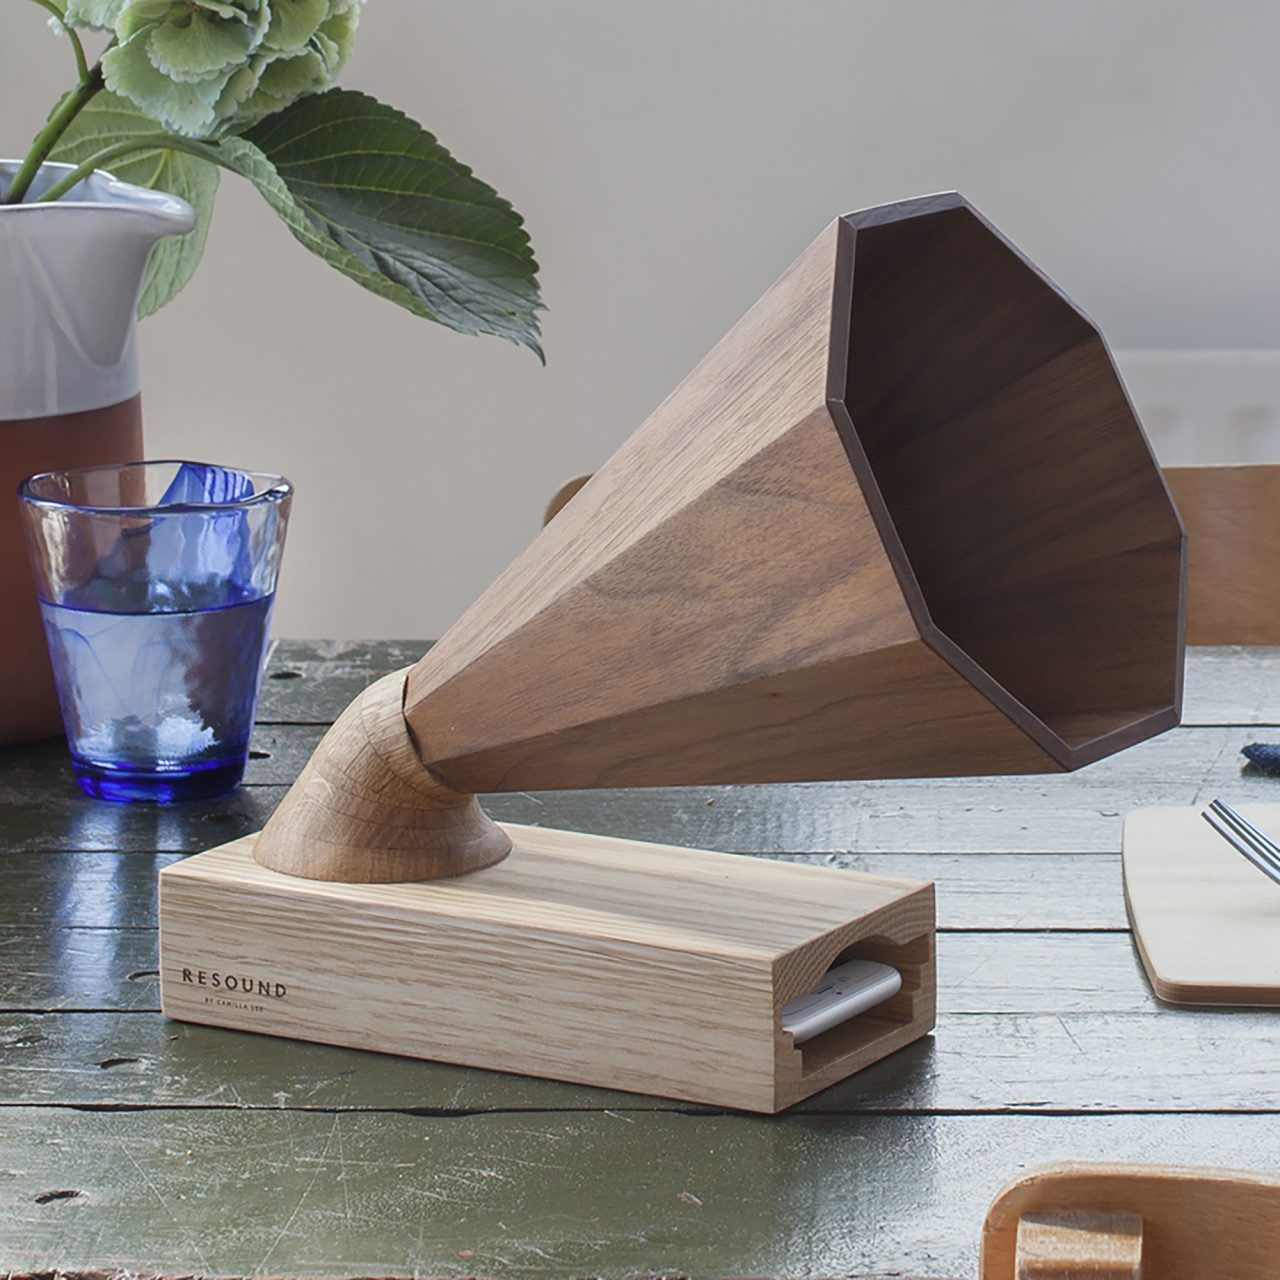 A Beautiful Handcrafted Wooden Amplifier That Acts As A